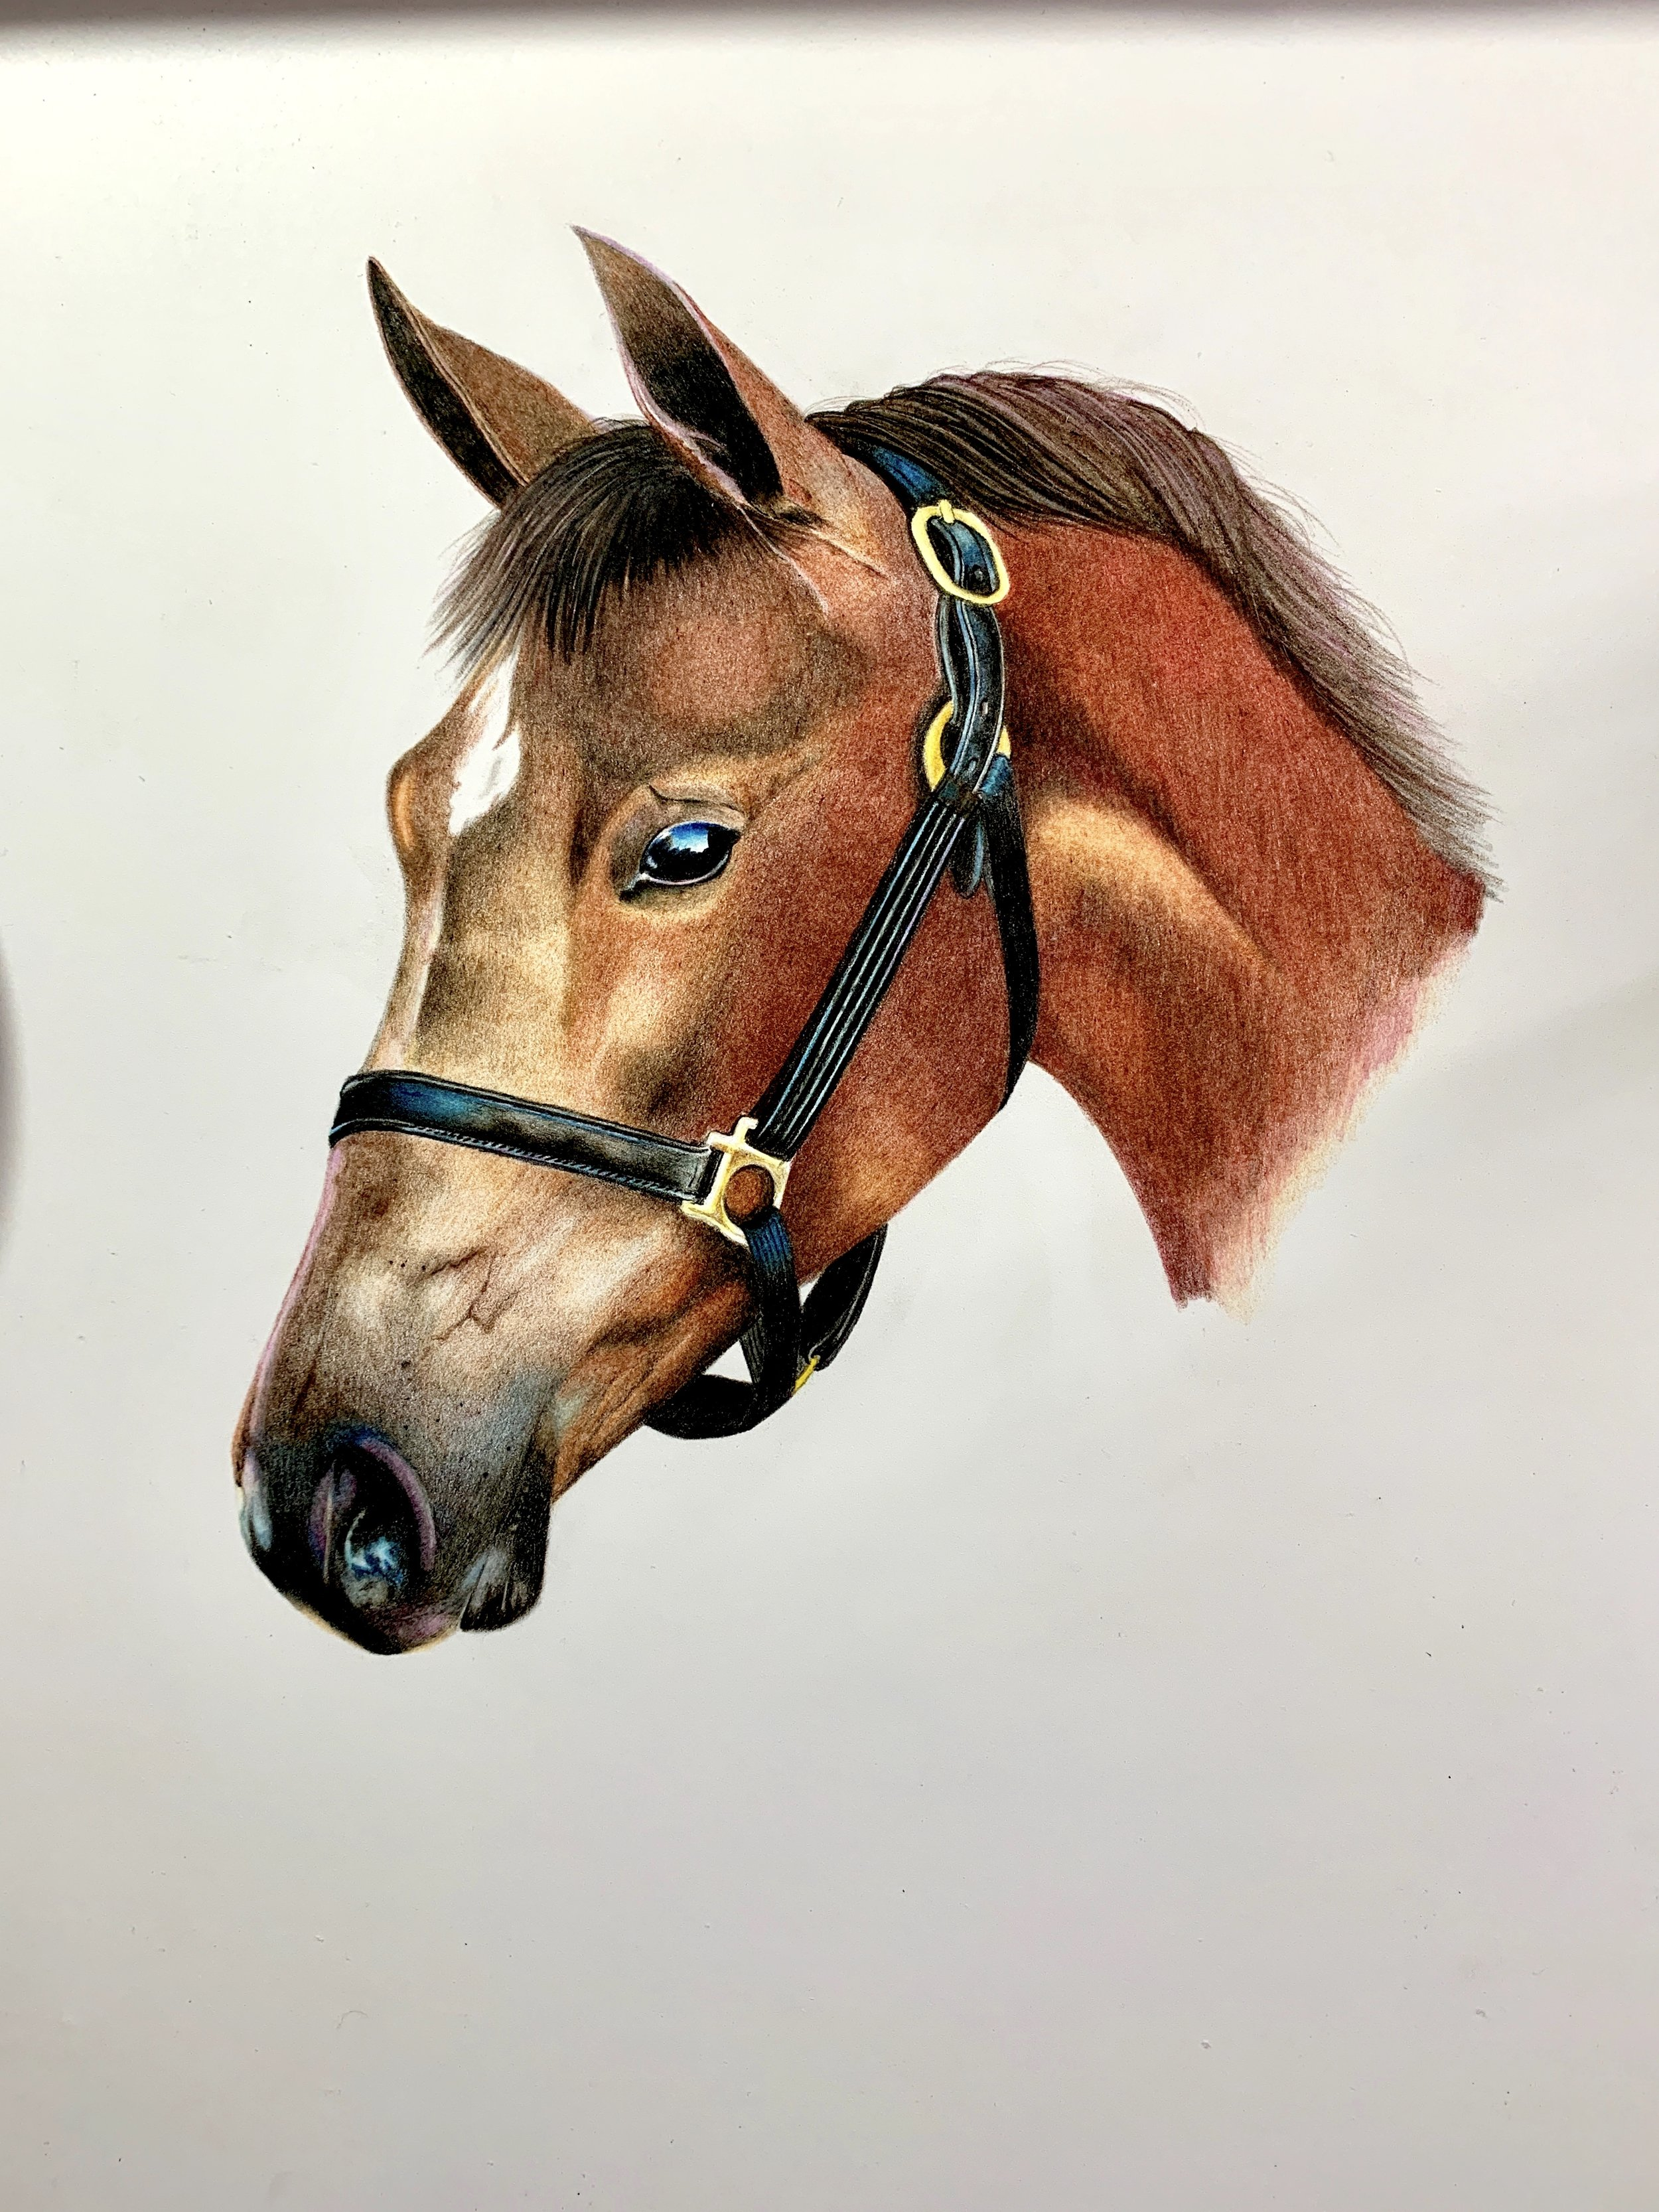 Schpirerr Farben Colored Pencil Speed Drawing Of Horse The